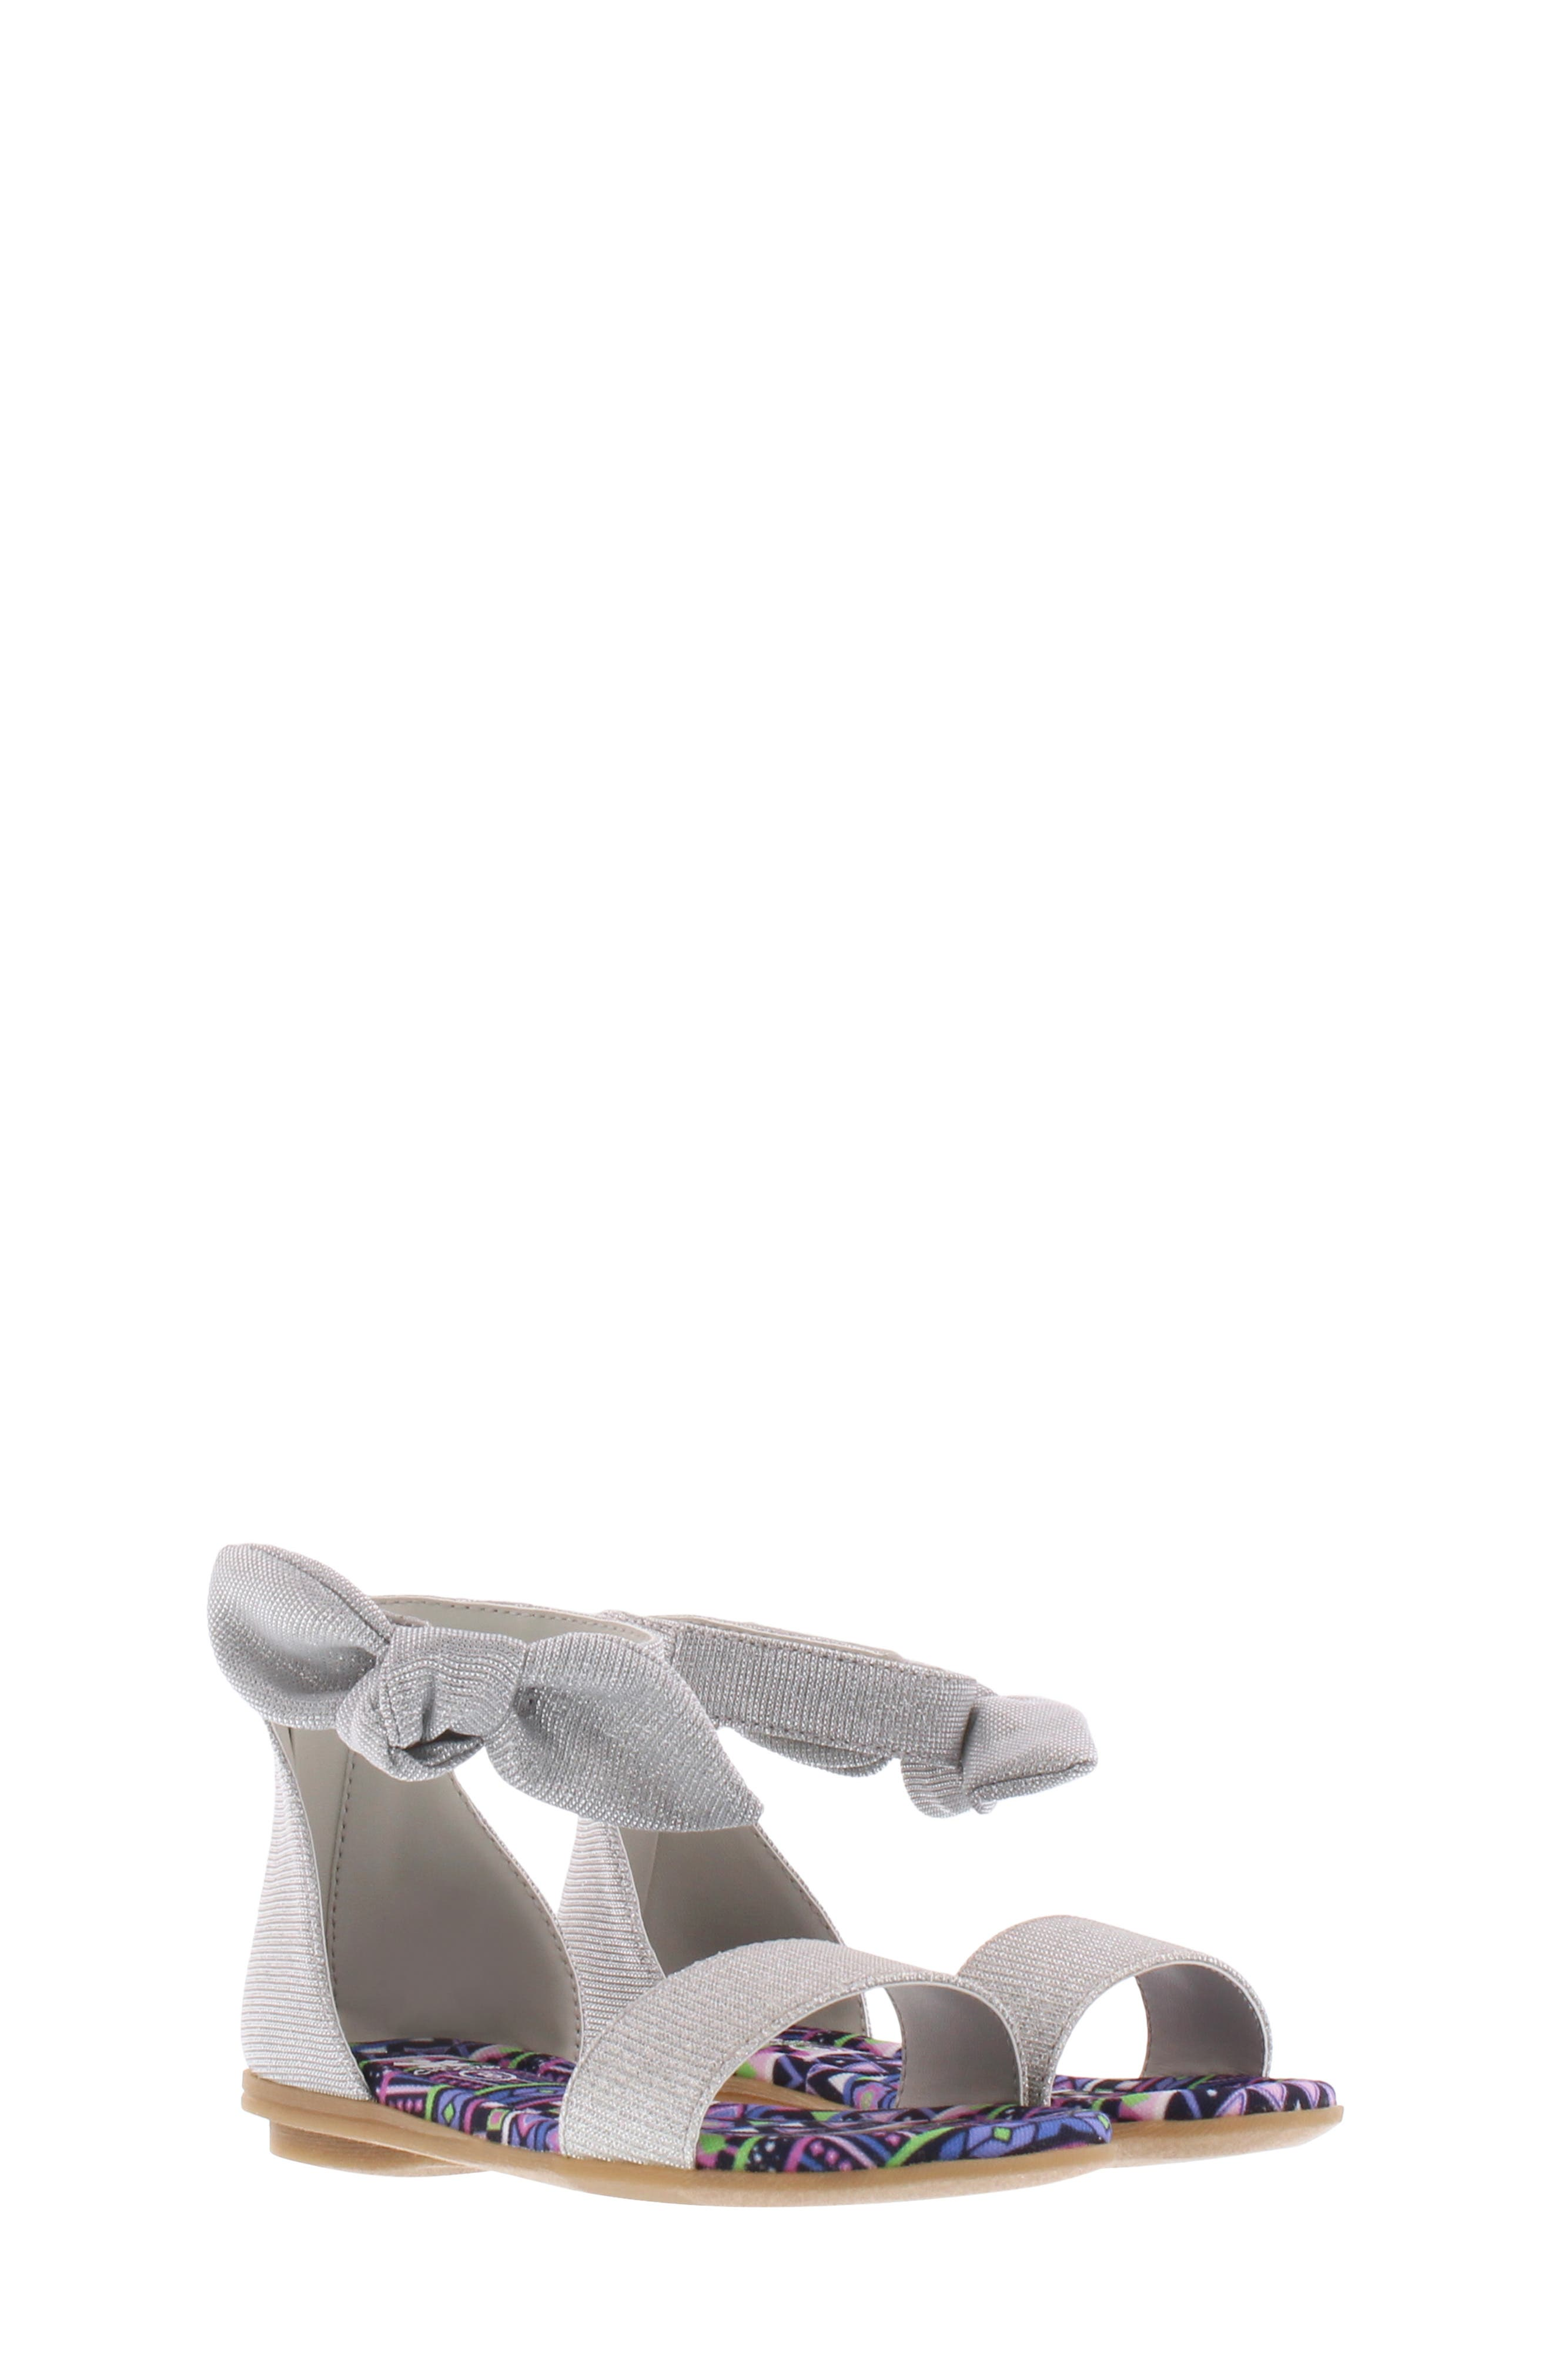 CHOOZE Bright Daisy Sandal, Main, color, SILVER